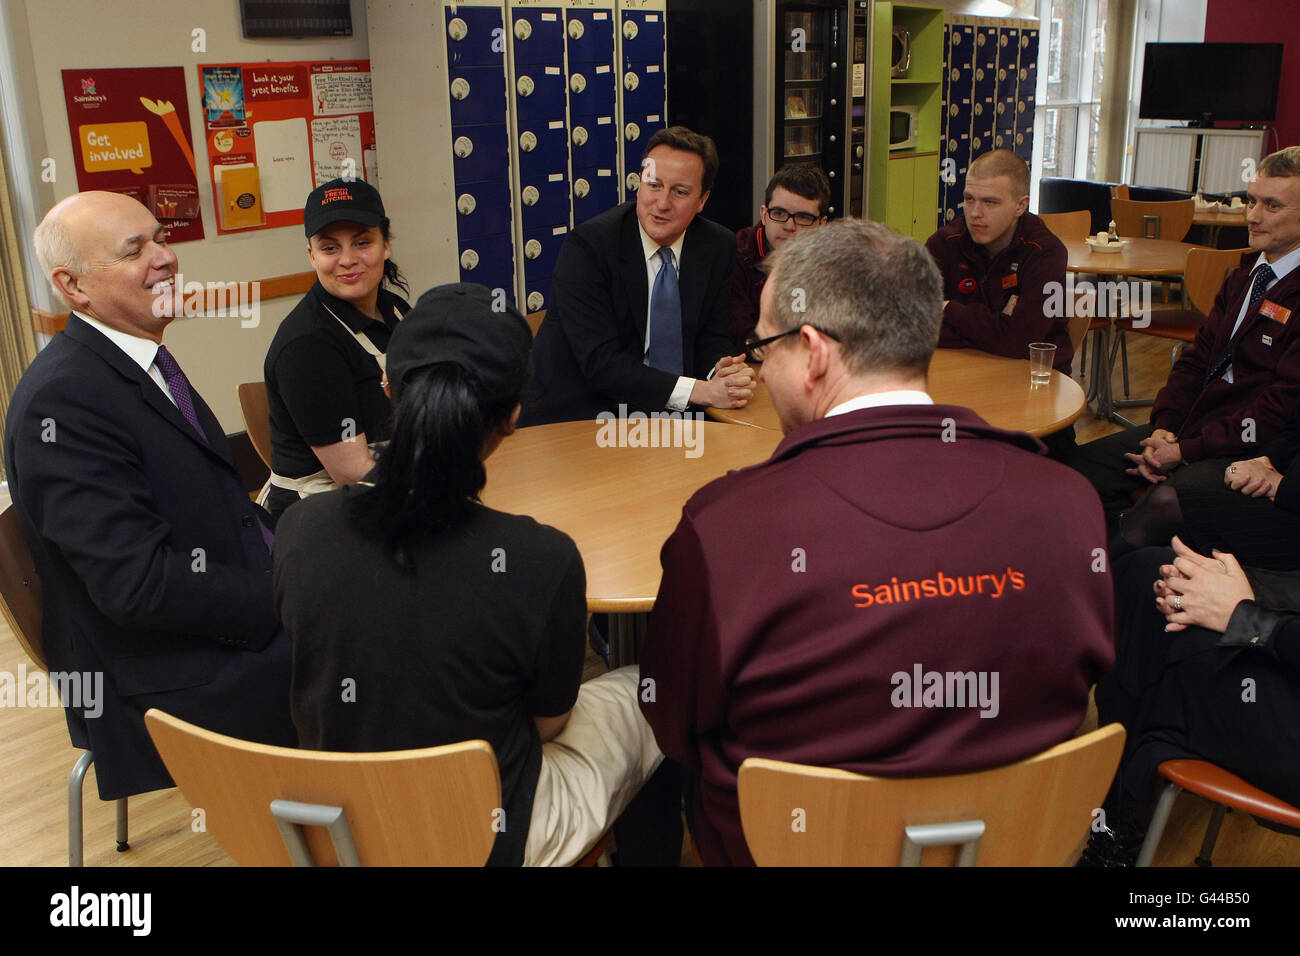 Prime Minister David Cameron and Work and Pensions Secretary Iain Duncan Smith speaks with staff members during Stock Photo